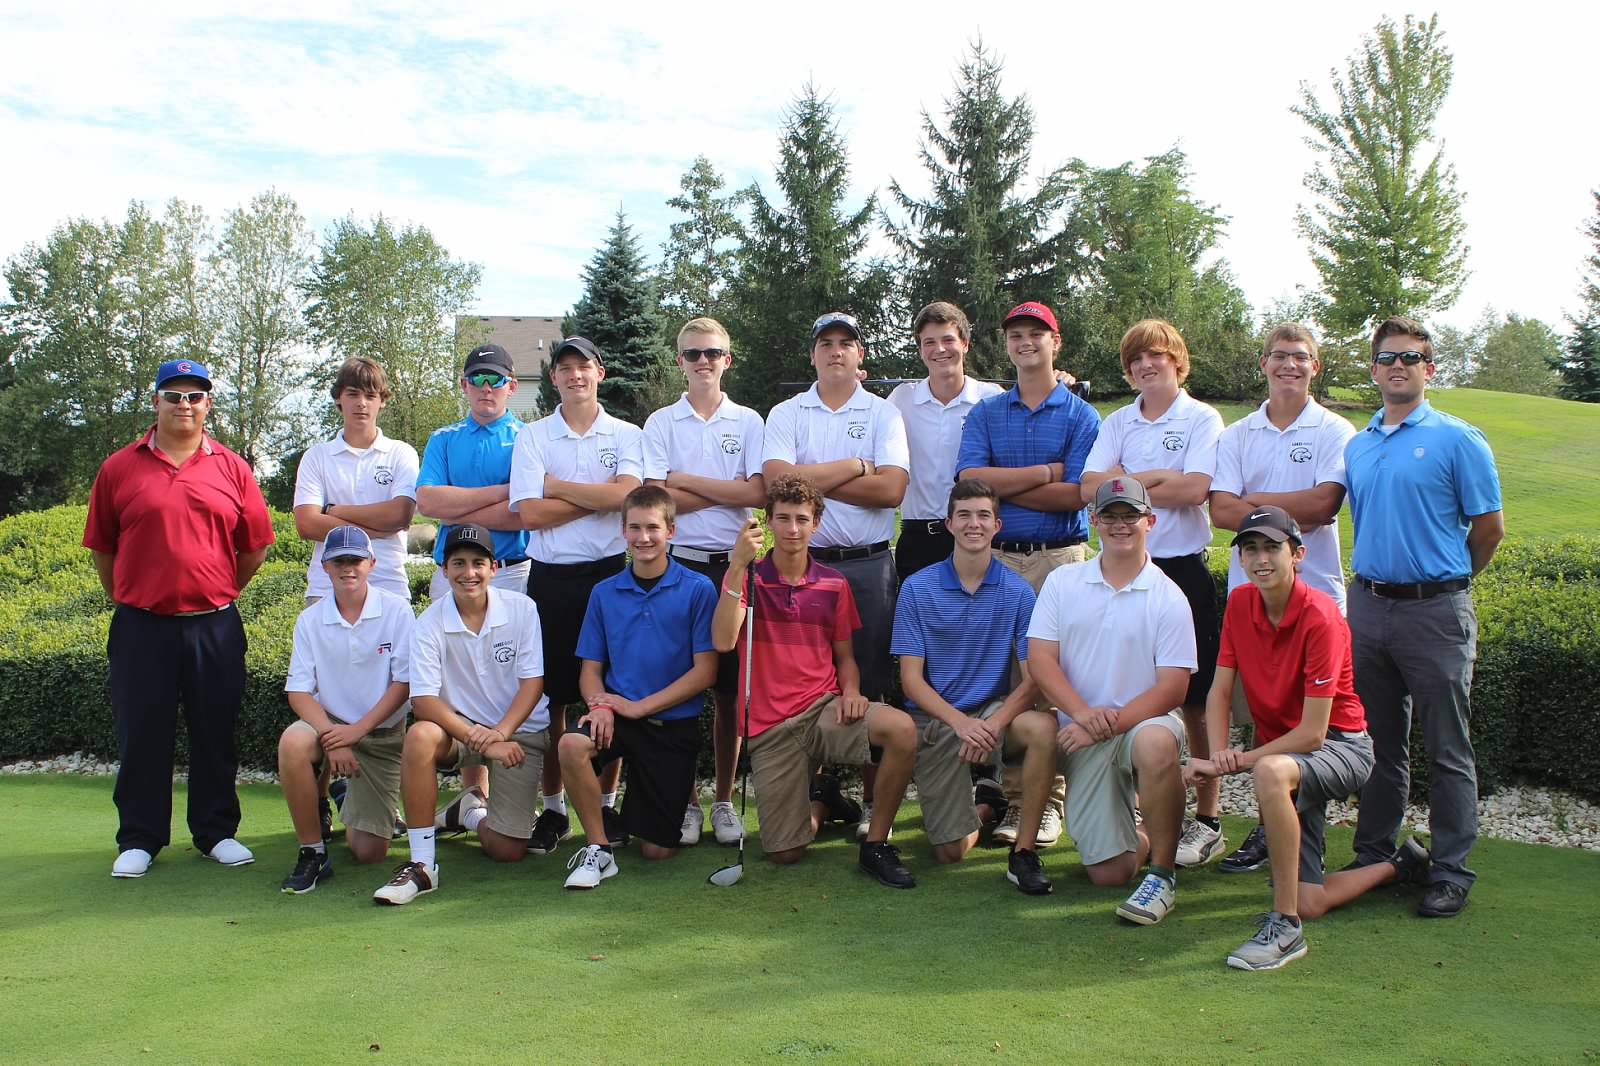 Boys Golf Team poses for a picture their match